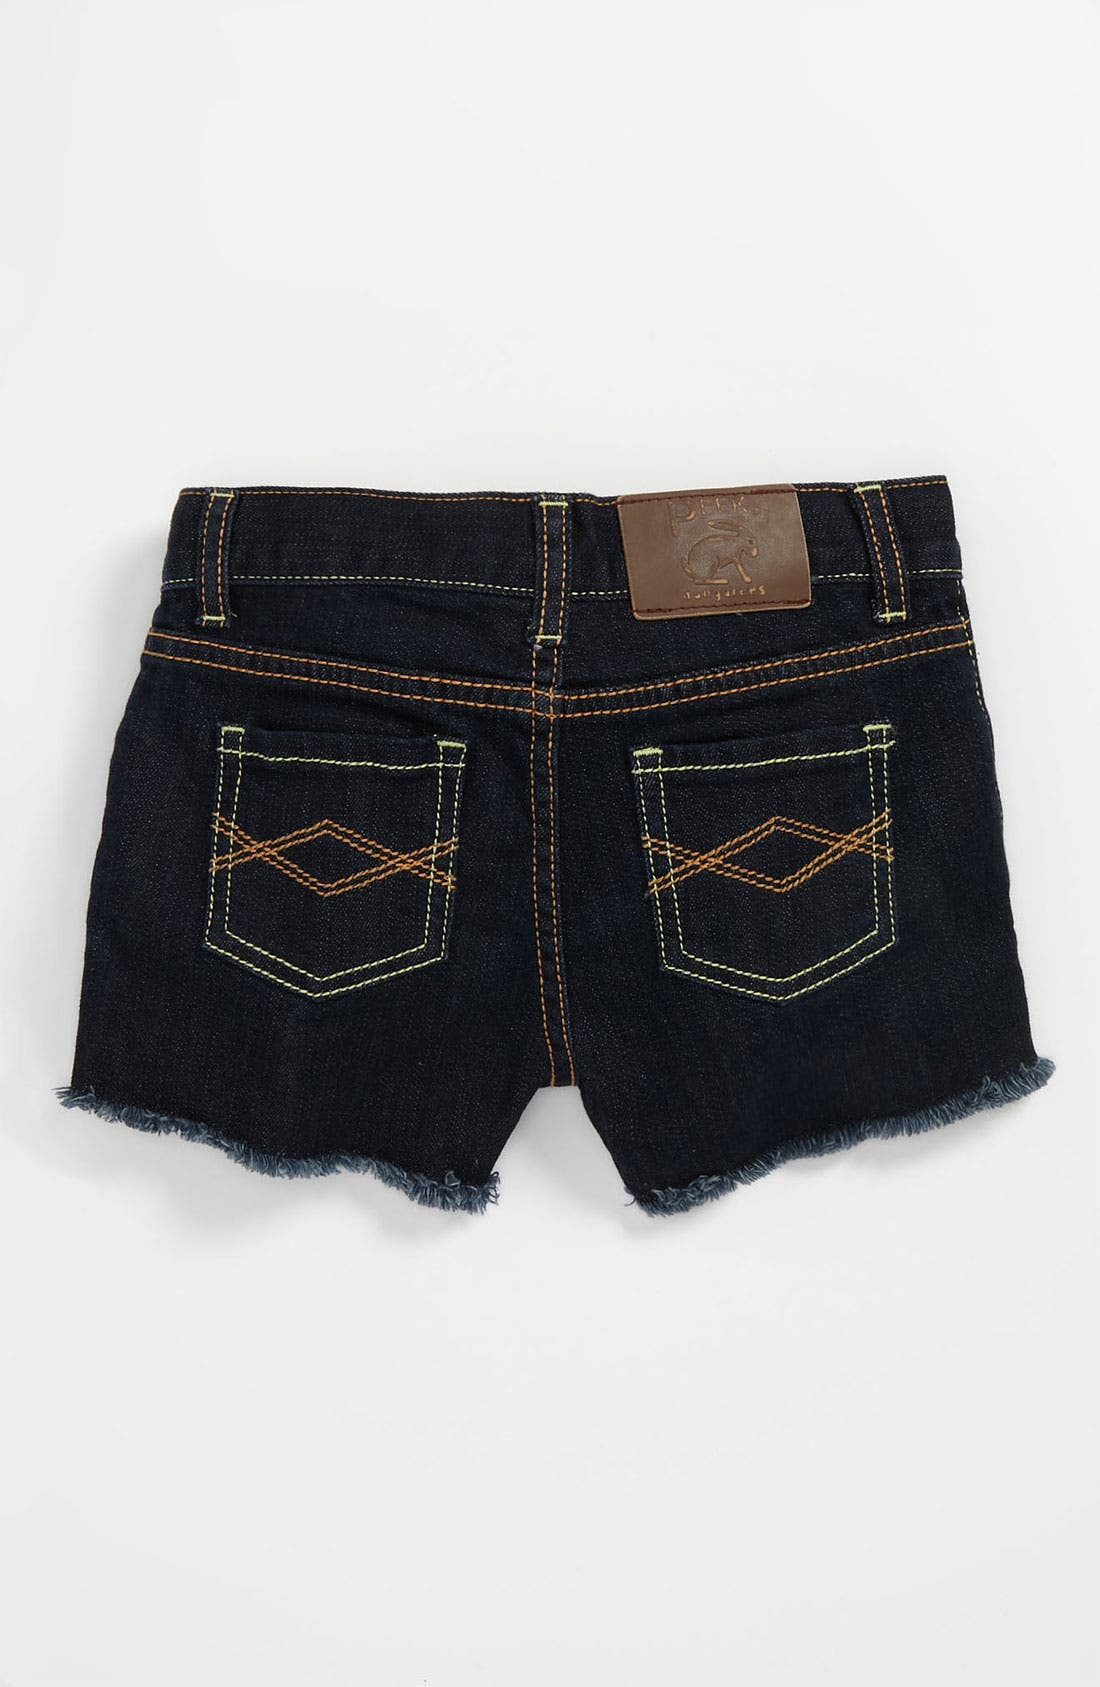 Alternate Image 1 Selected - Peek 'New Morgan' Denim Shorts (Big Girls)